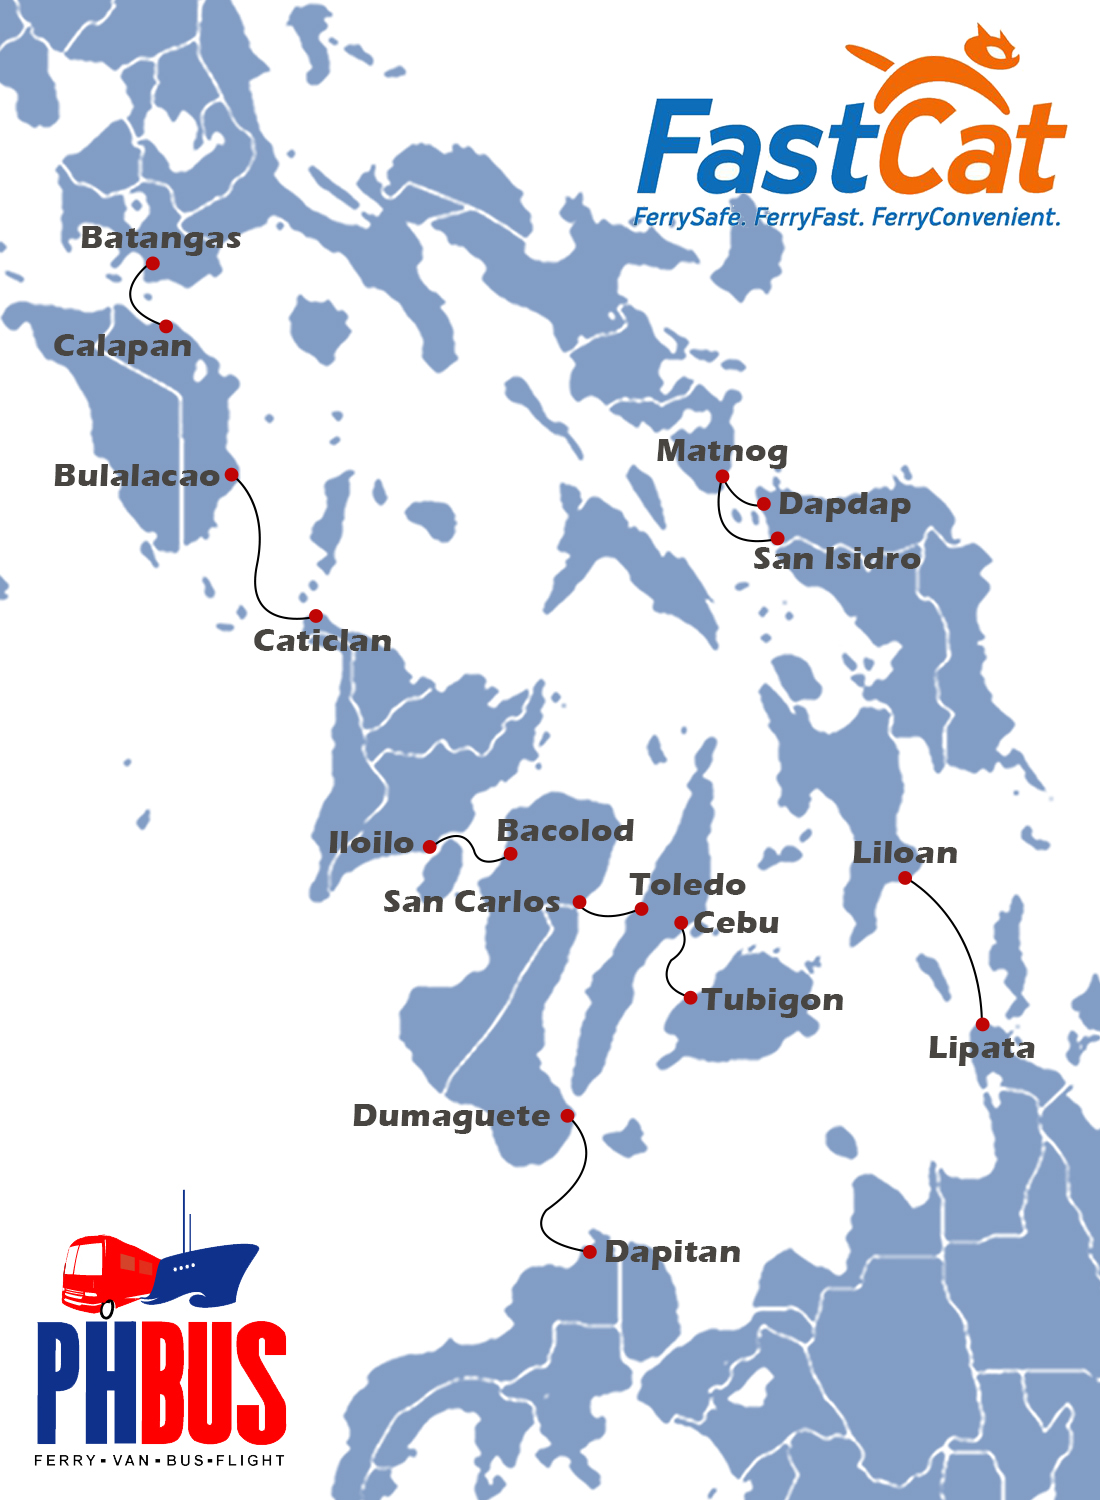 fastcat-ferry-route-map-network-phbus.jpg